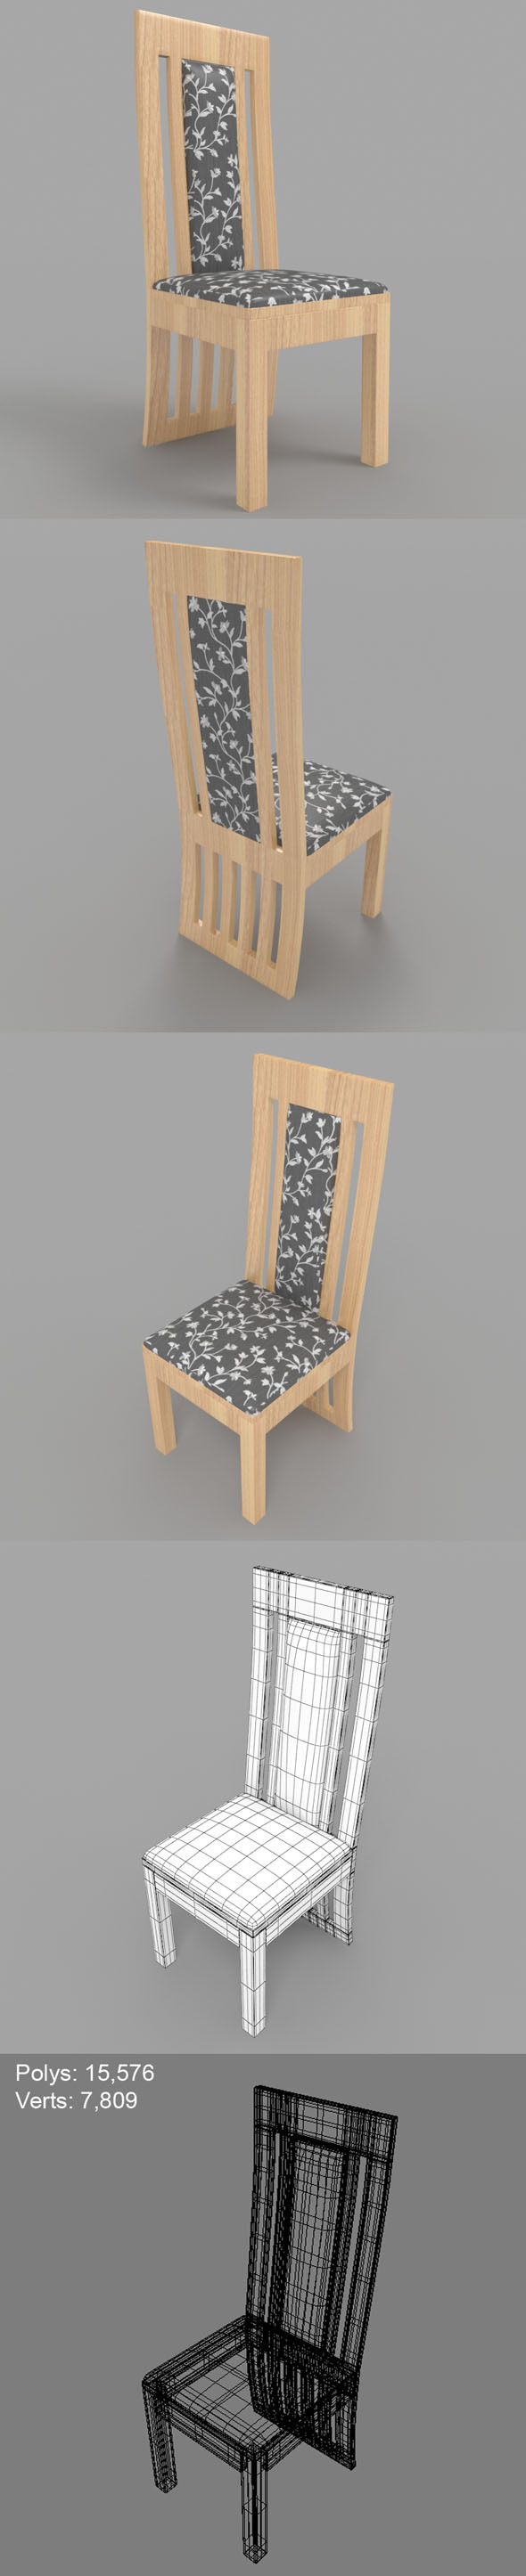 Dining Chair-2 - 3DOcean Item for Sale